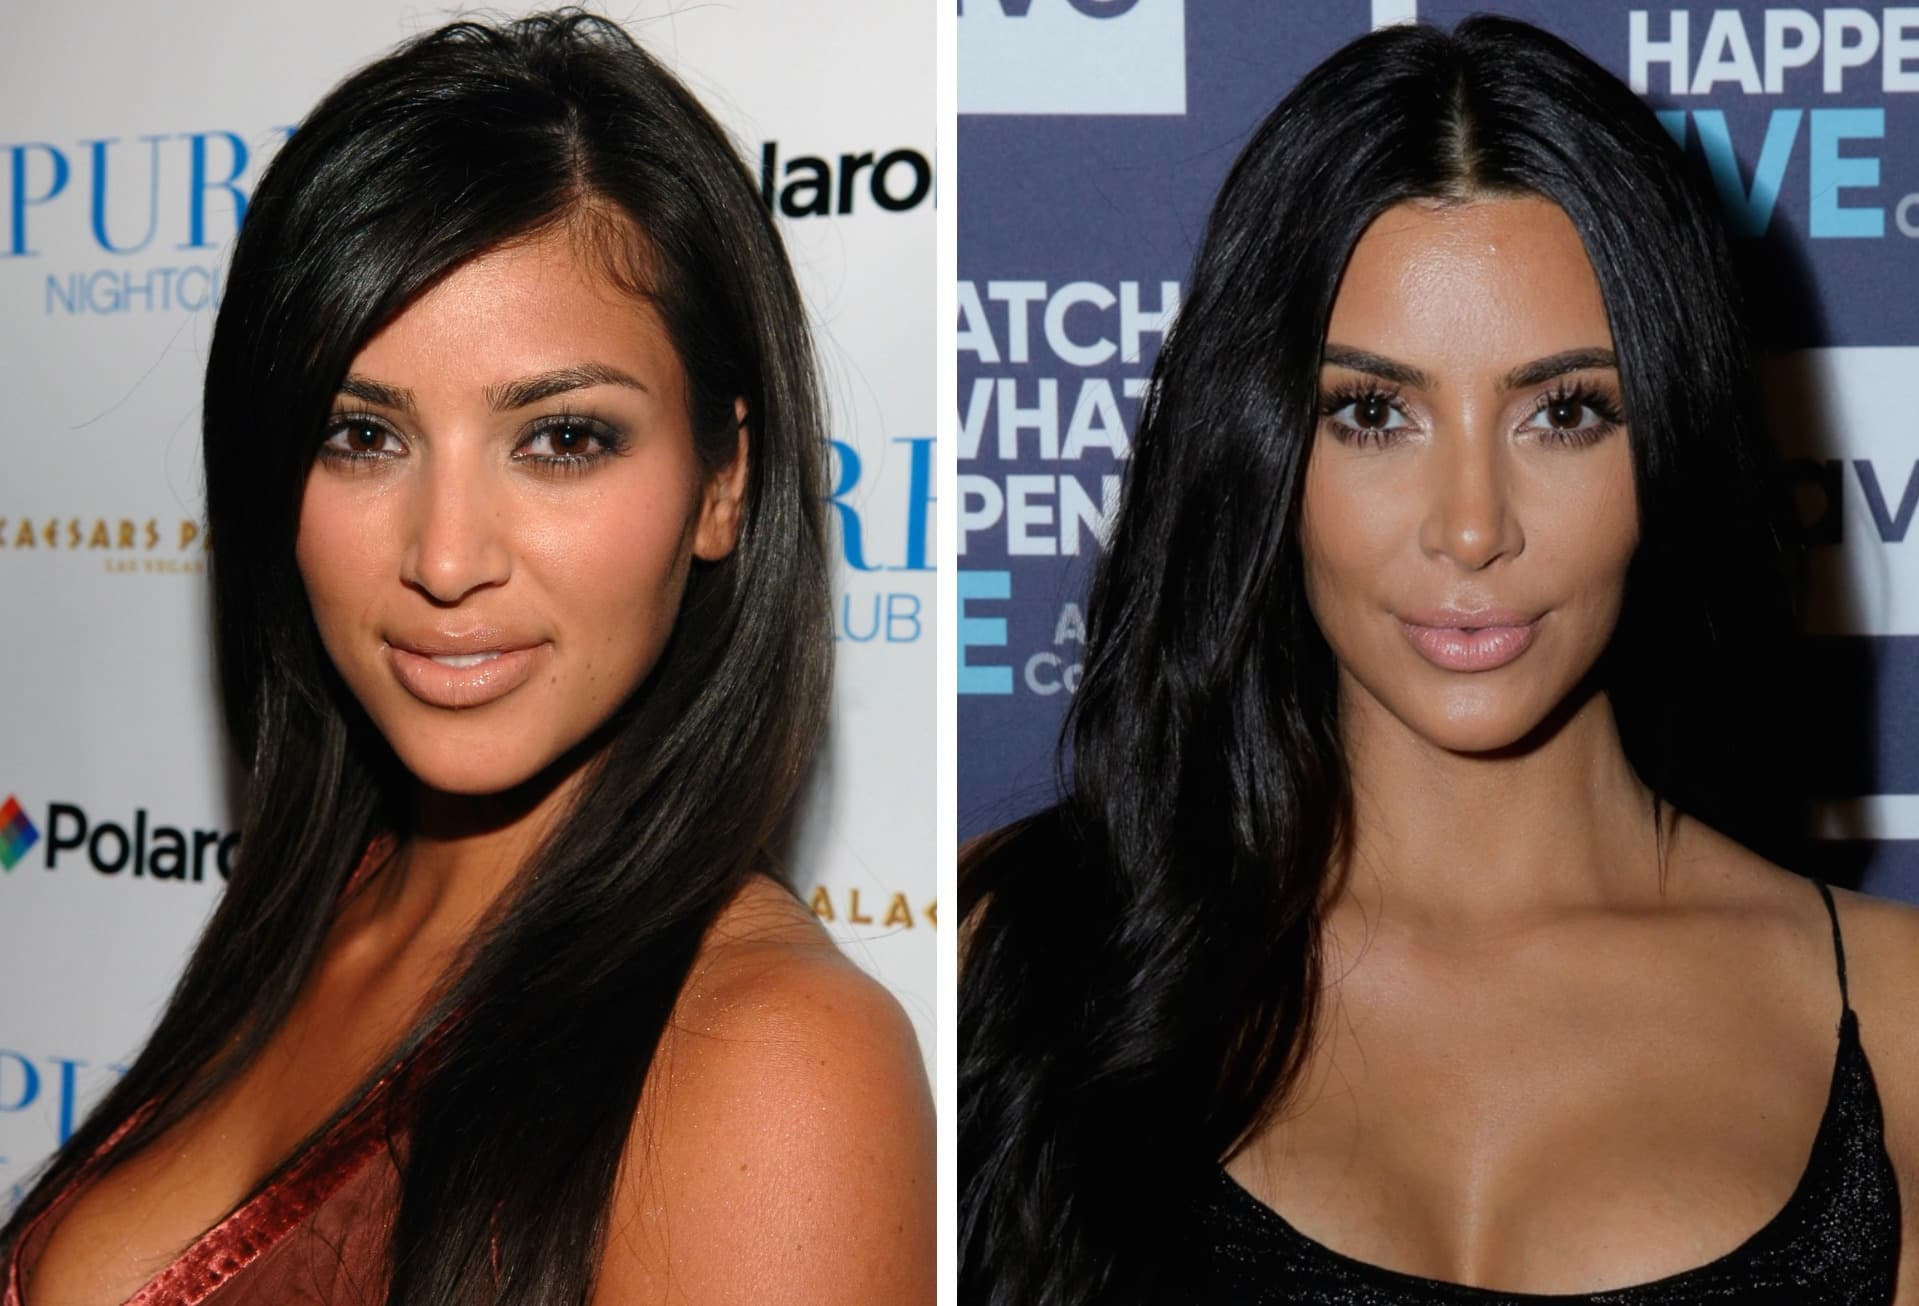 Kardashians Before After Plastic Surgery photo - 1